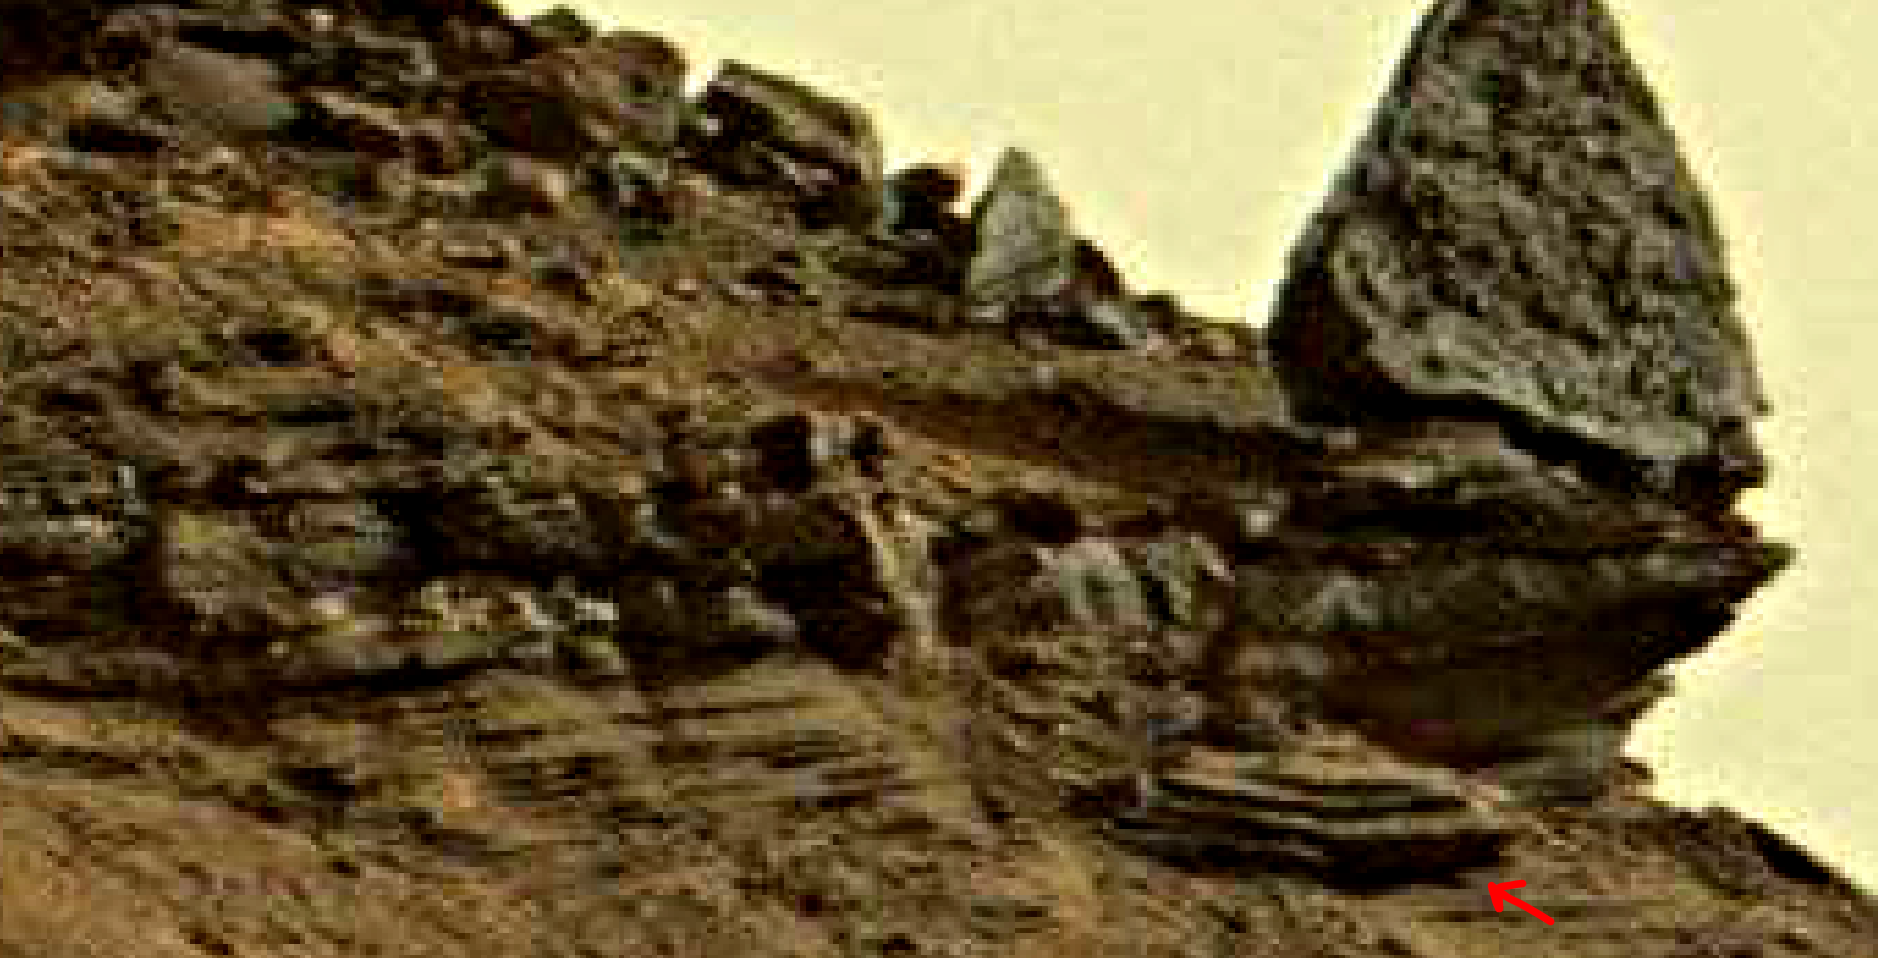 mars sol 1419 anomaly artifacts 3 was life on mars